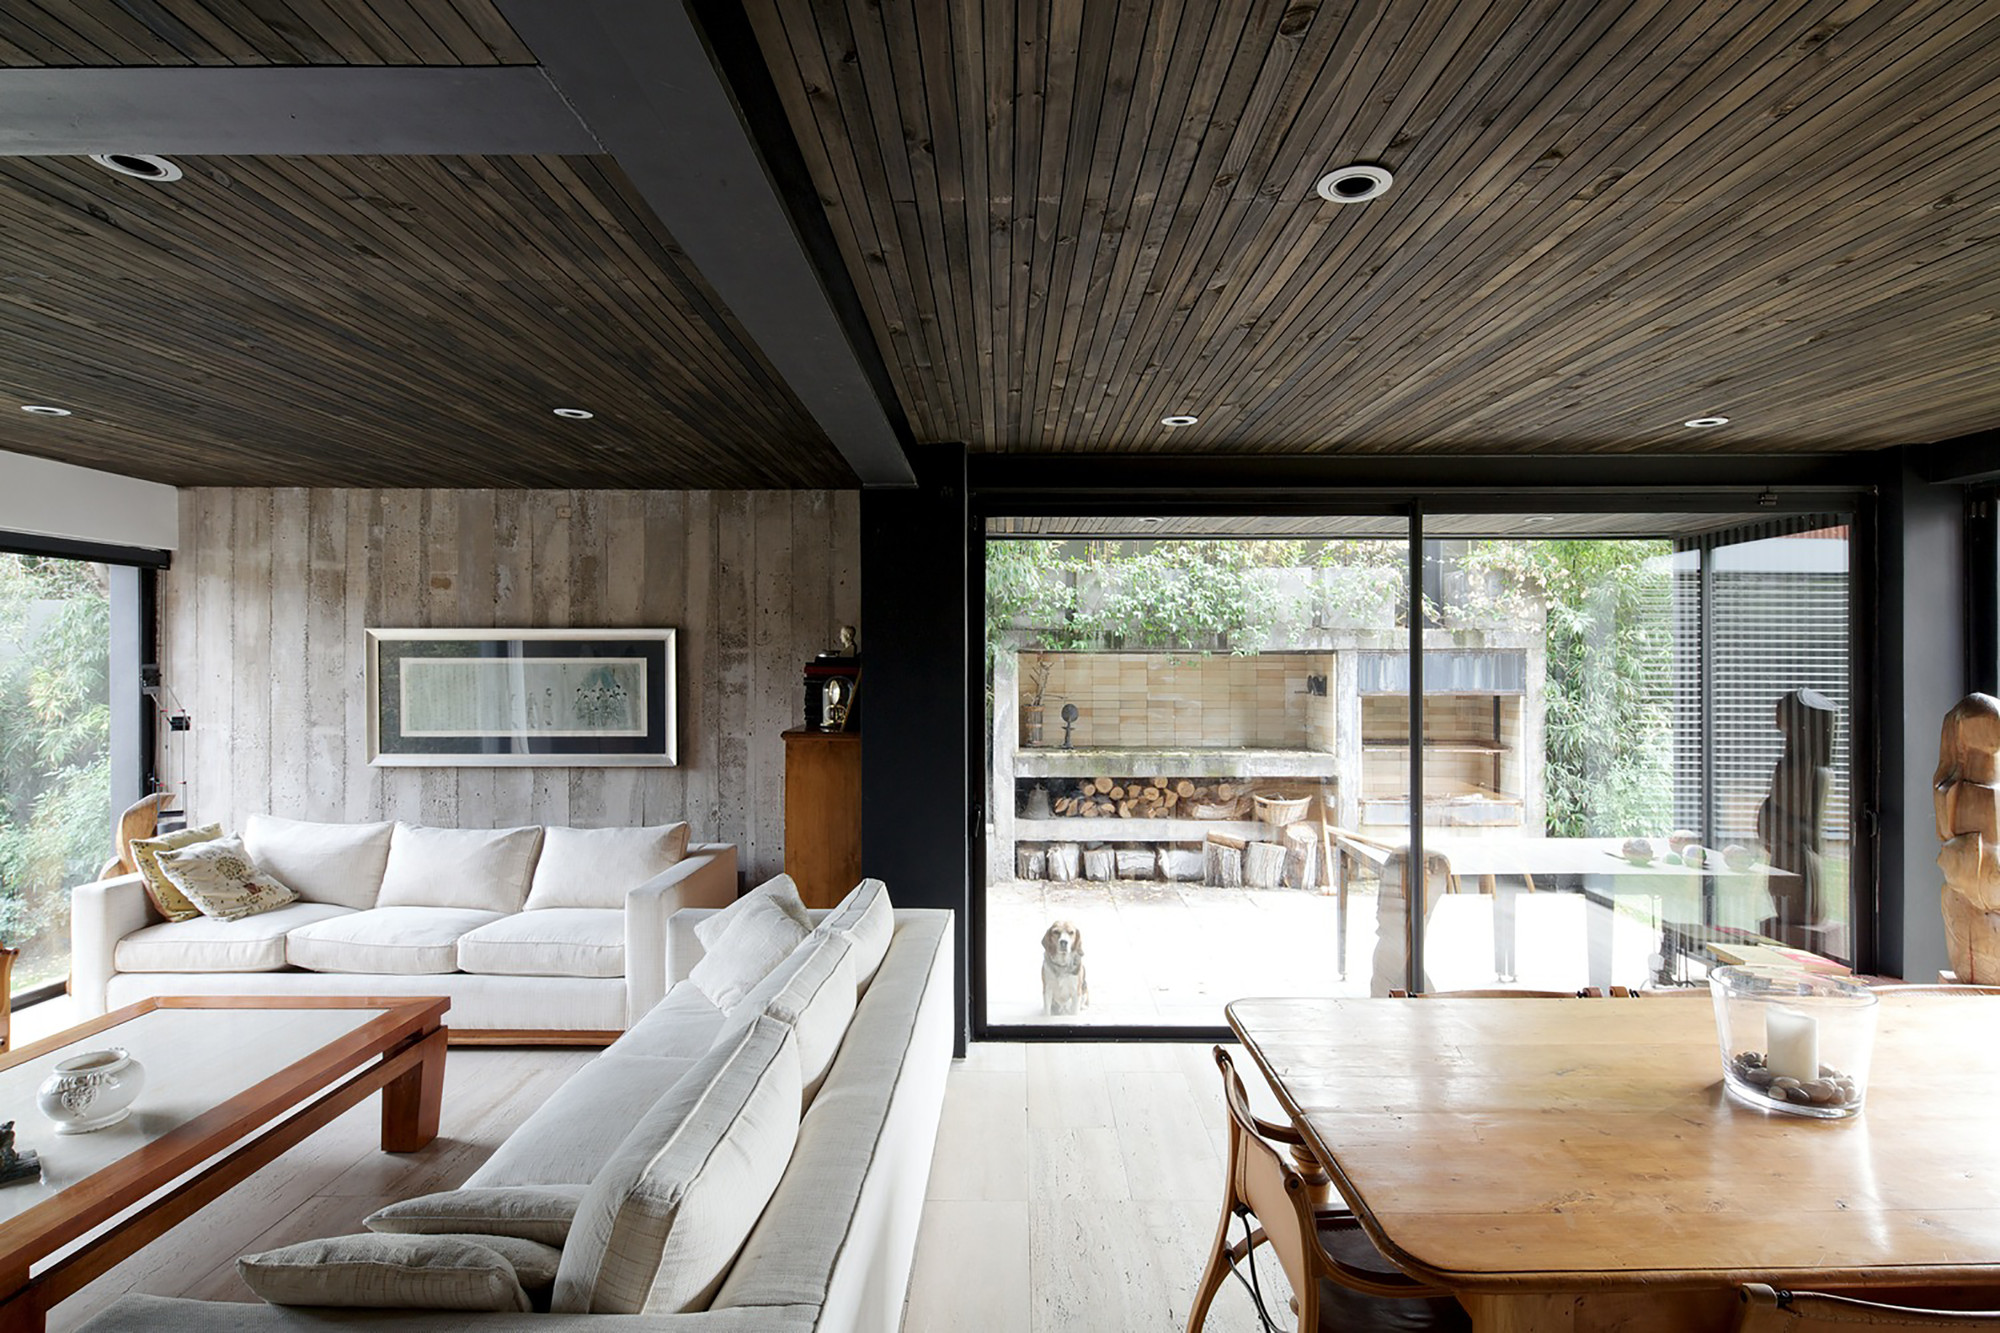 Raw industrial finishes and non-toxic interior materials and finishes allow for better indoor air quality (IAQ): project by V House / Mathias Klotz © Nico Saieh